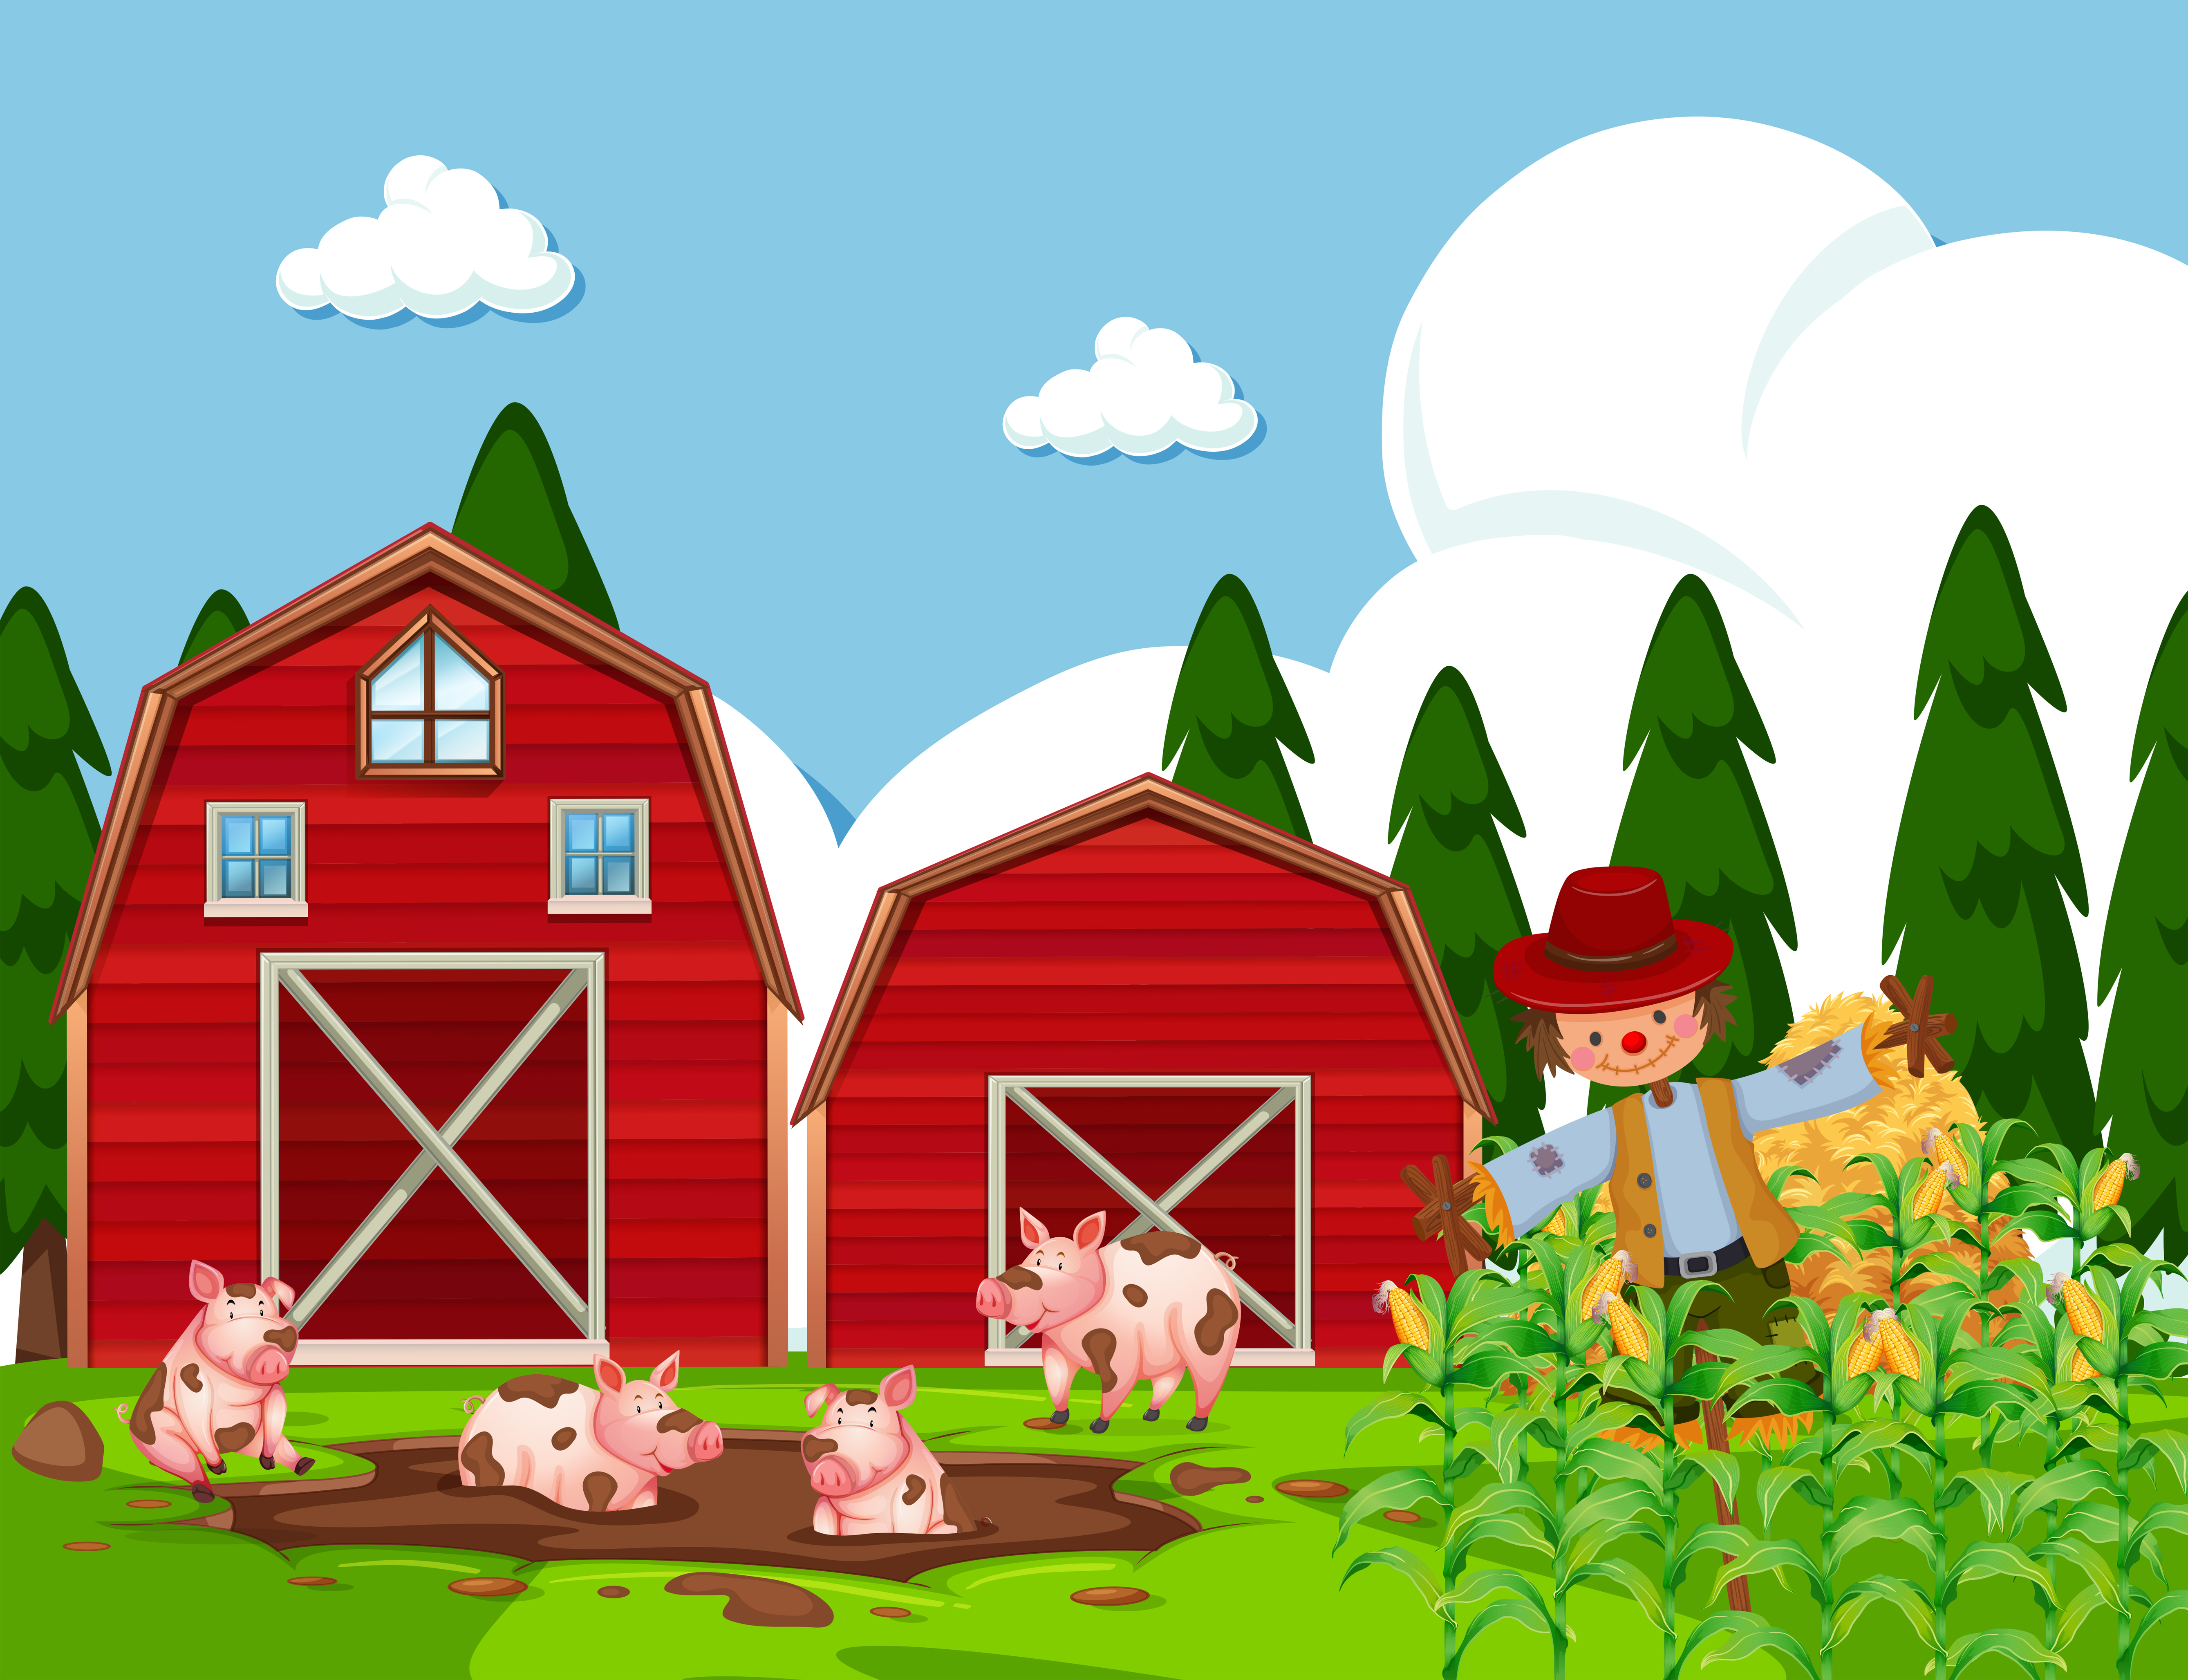 Farm scene with pigs in mud - Download Free Vectors ...